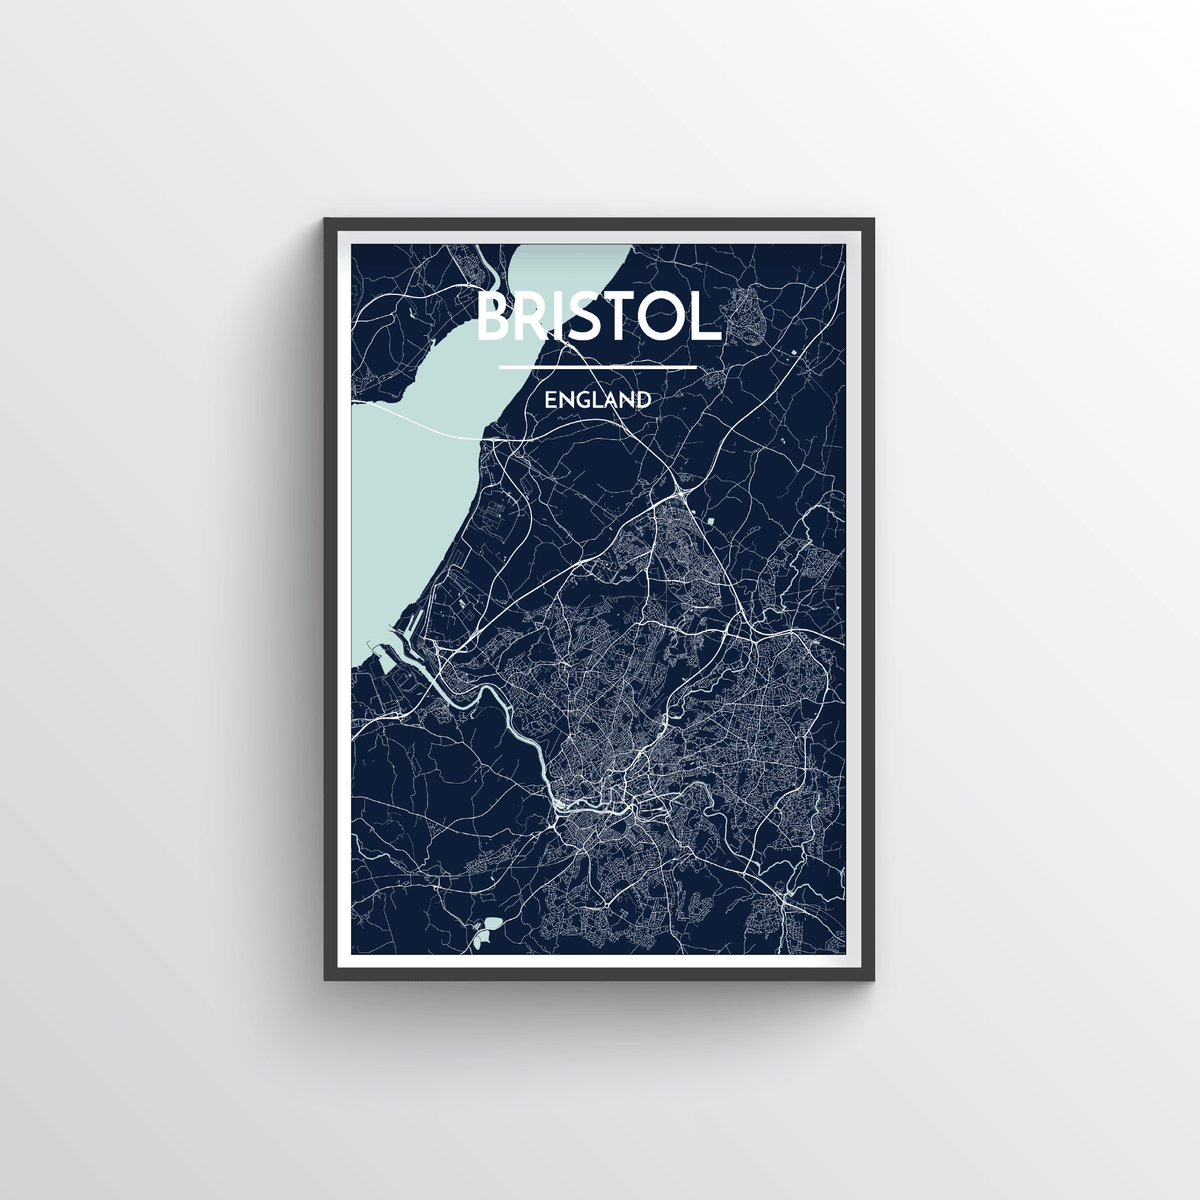 Bristol Map Art Print - Point Two Design